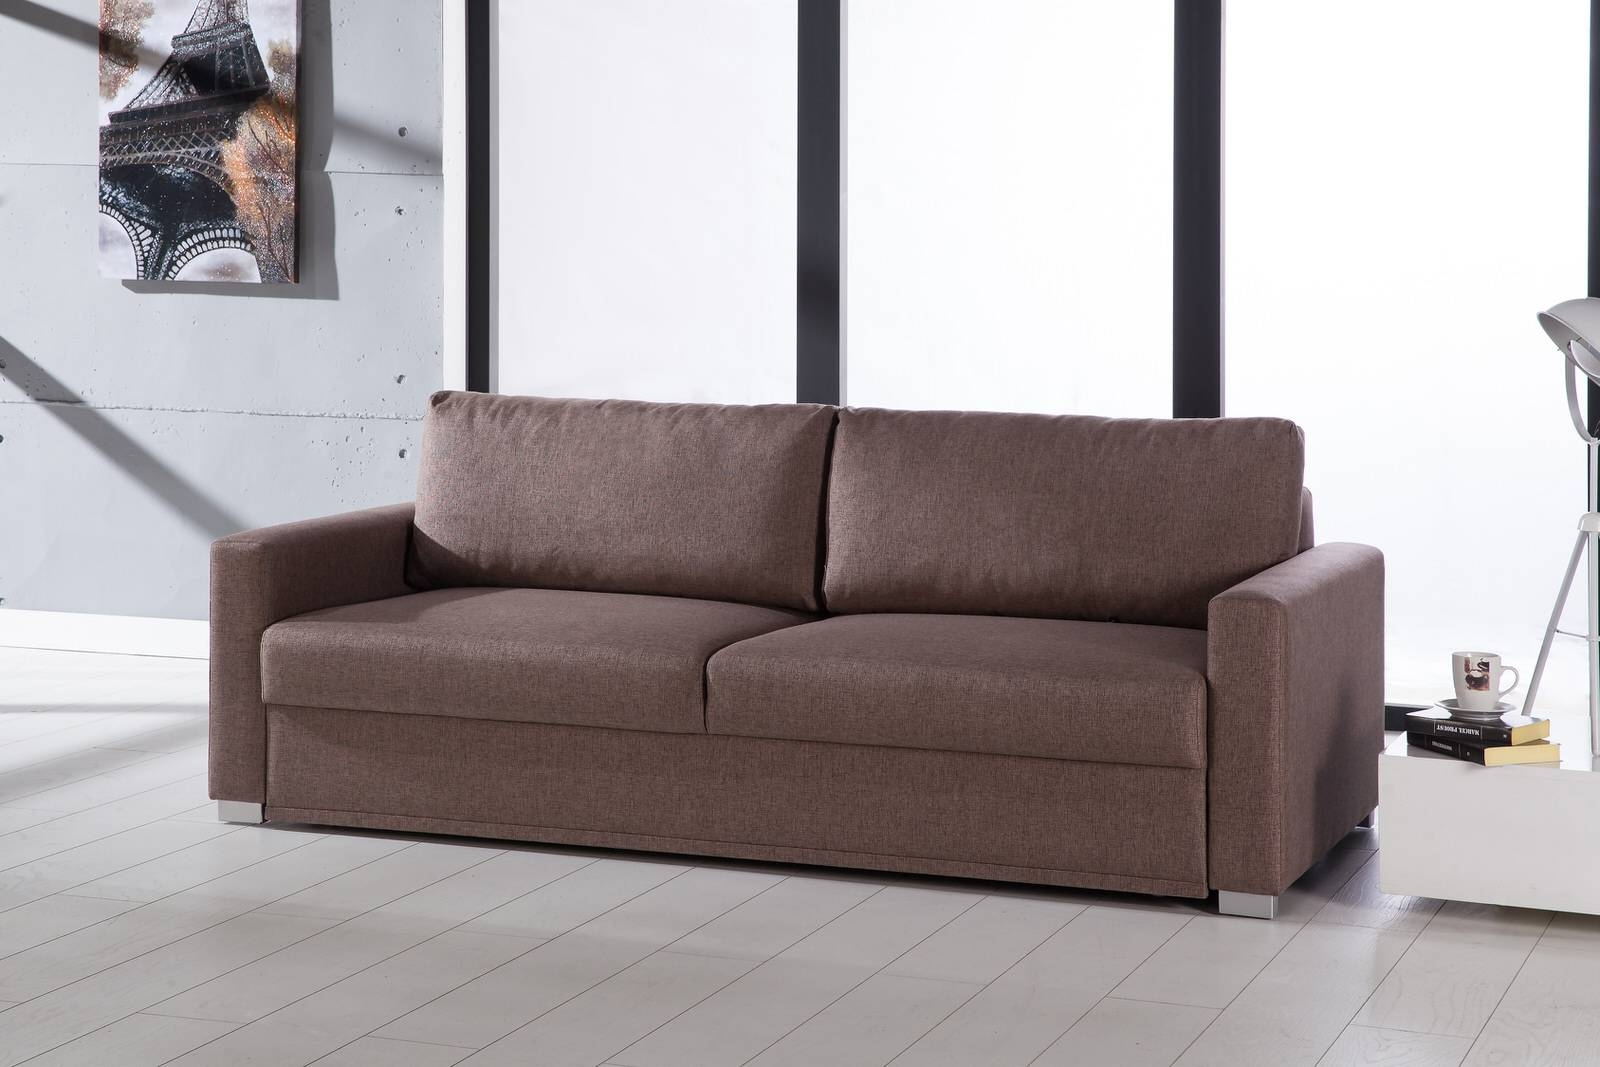 Furniture: Jennifer Convertibles Sofa Bed | Castro Convertible Bed pertaining to Castro Convertibles Sofa Beds (Image 7 of 15)